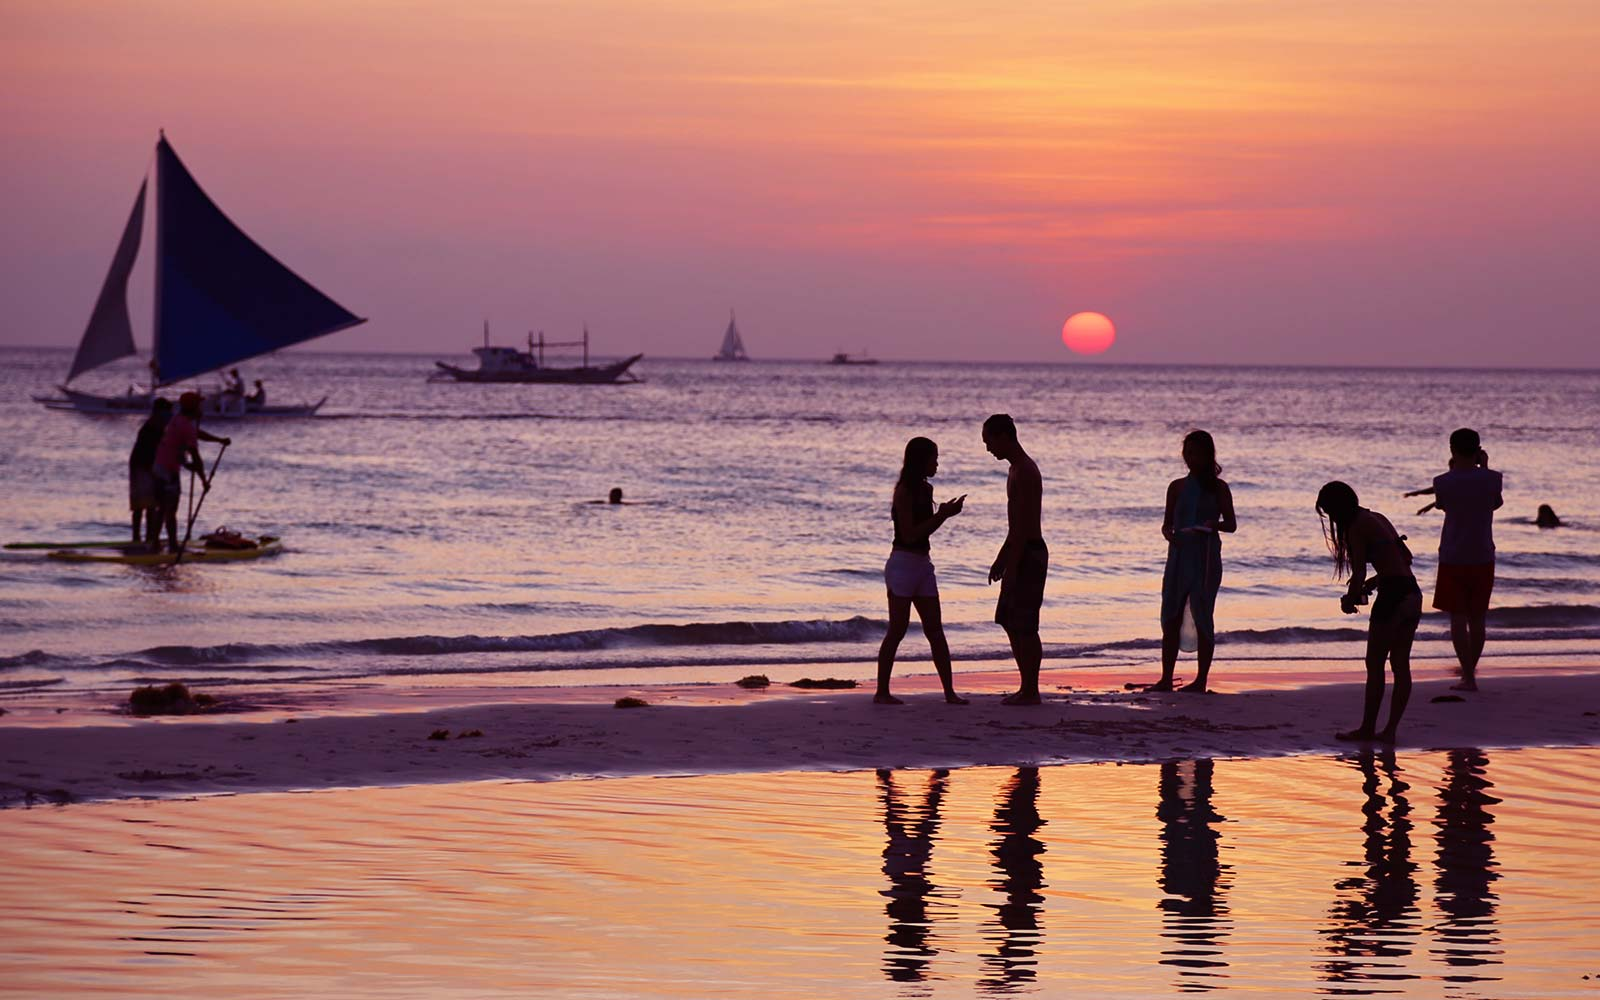 Where to Find the Most Romantic Sunsets in the World